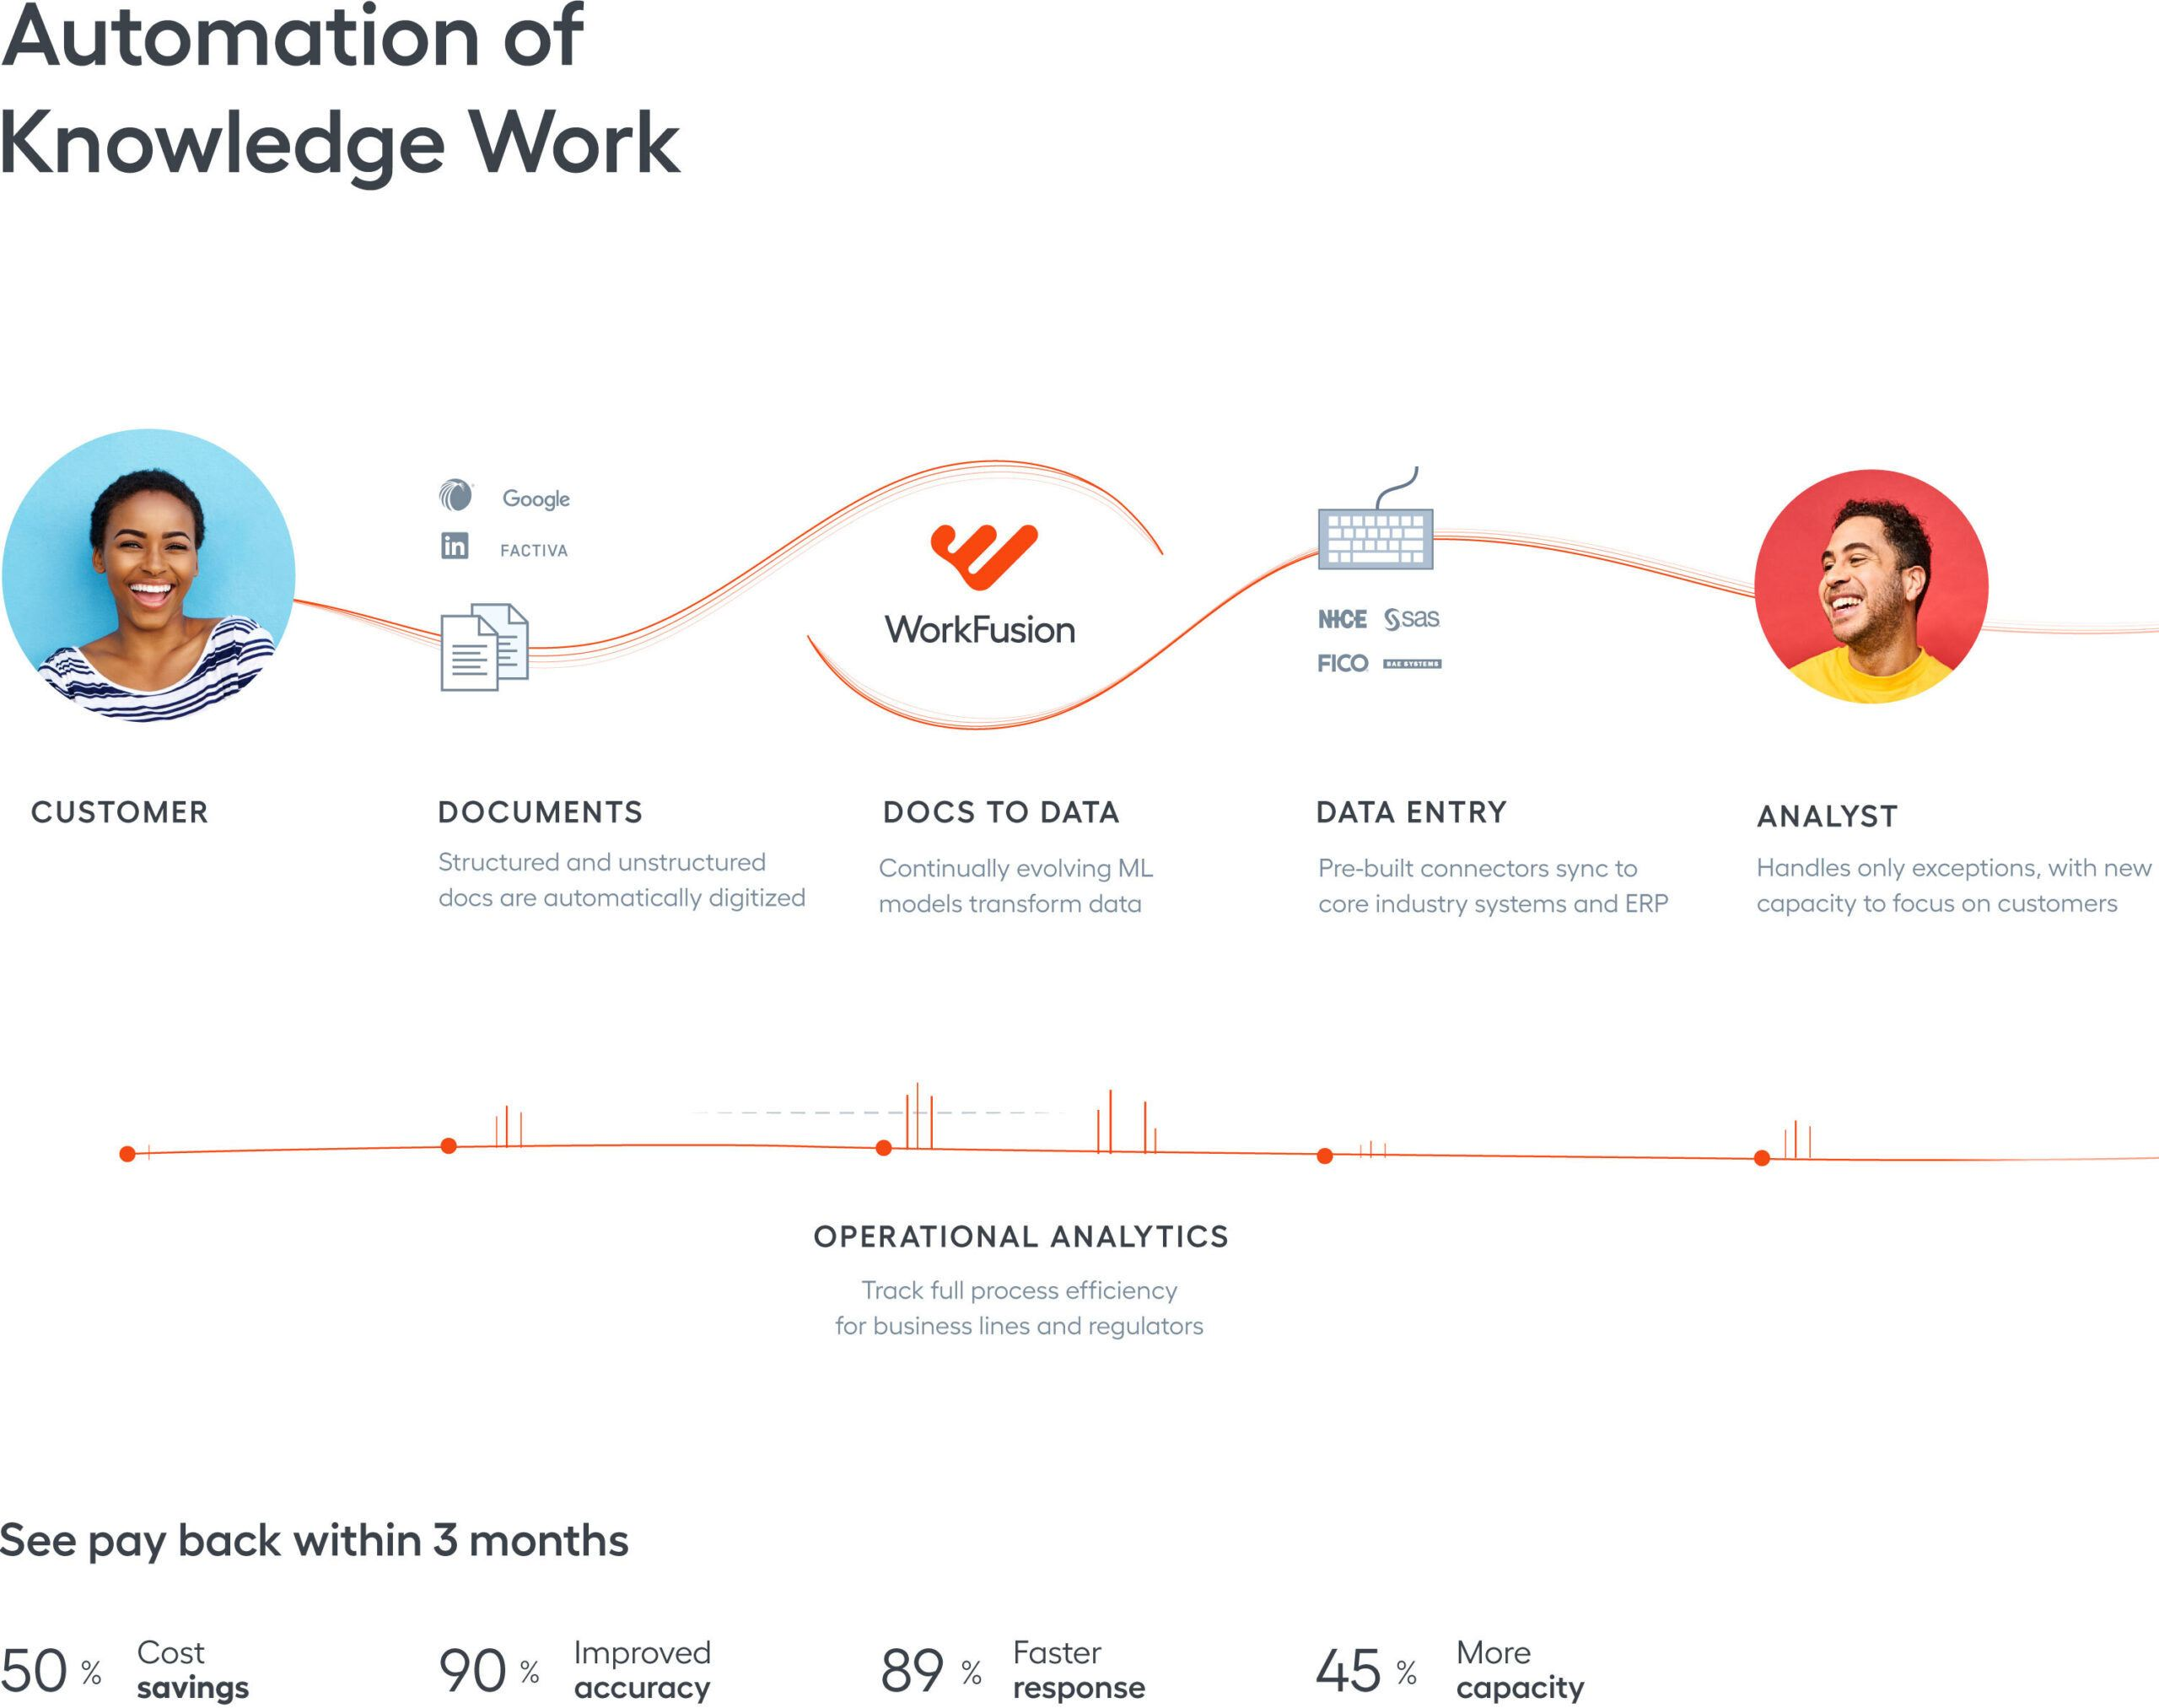 Automation of Knowledge Work Infographic